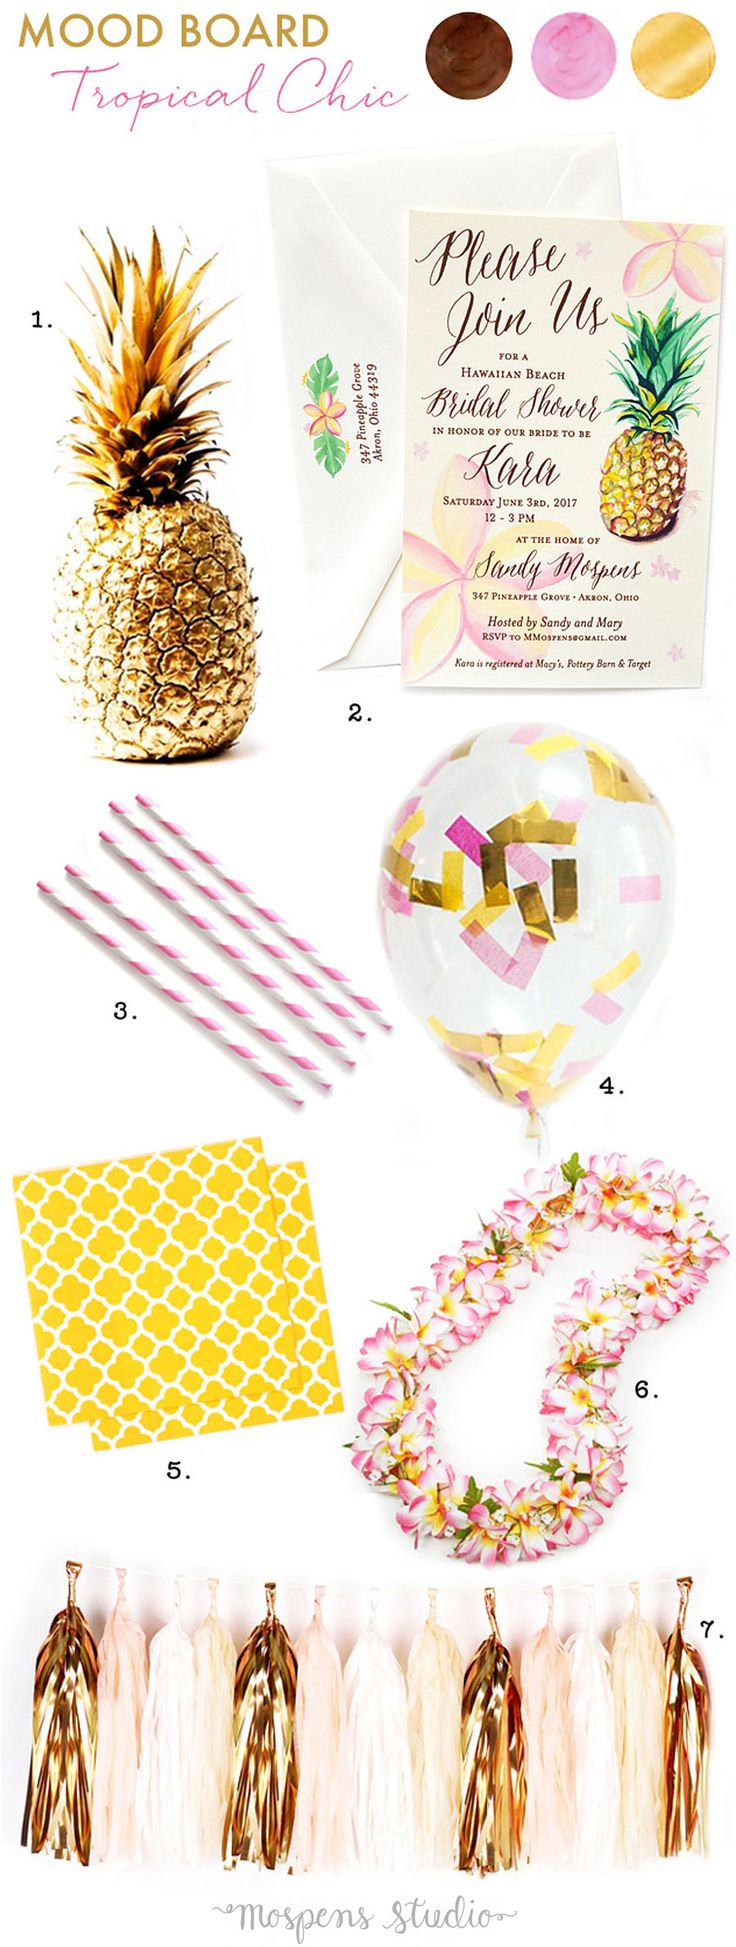 Fun and flirty! Tropical Hawaiian Chic Bridal Shower Ideas complete with pineapples and plumeria flowers. - www.mospensstudio.com